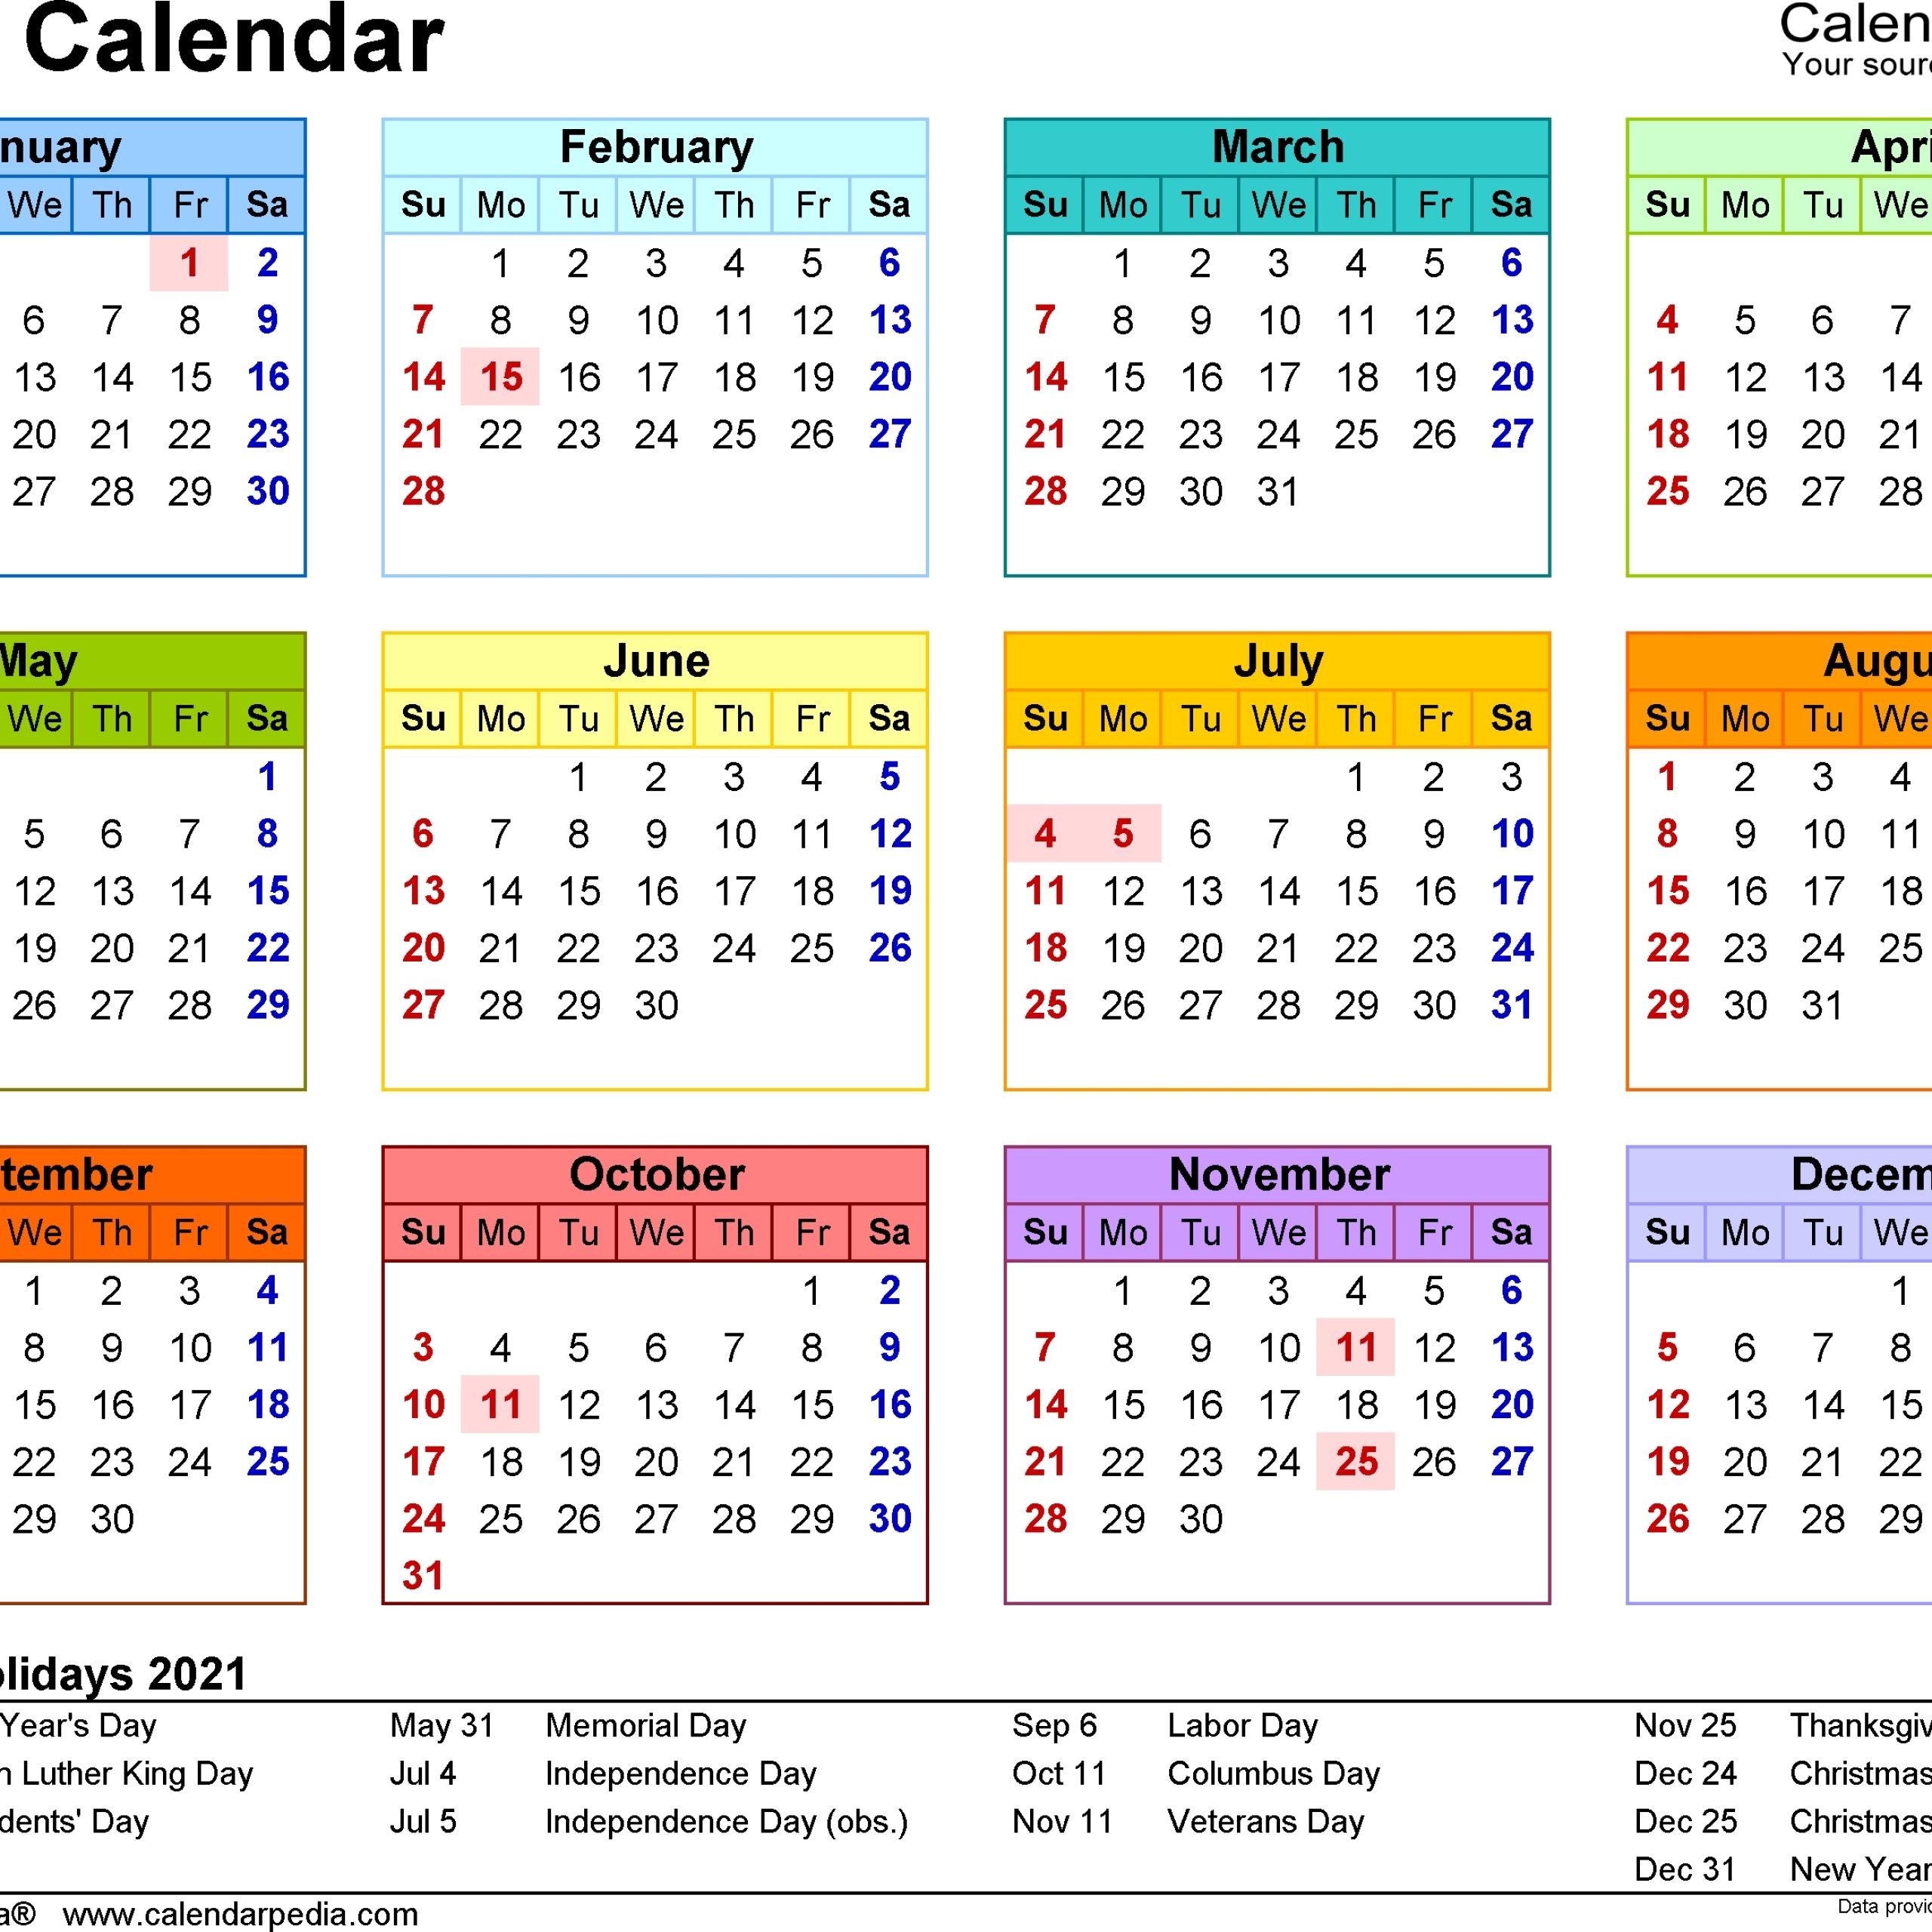 2021 Calendar South Africa In 2020 | Calendar Printables  Calandar 2021 Pdf